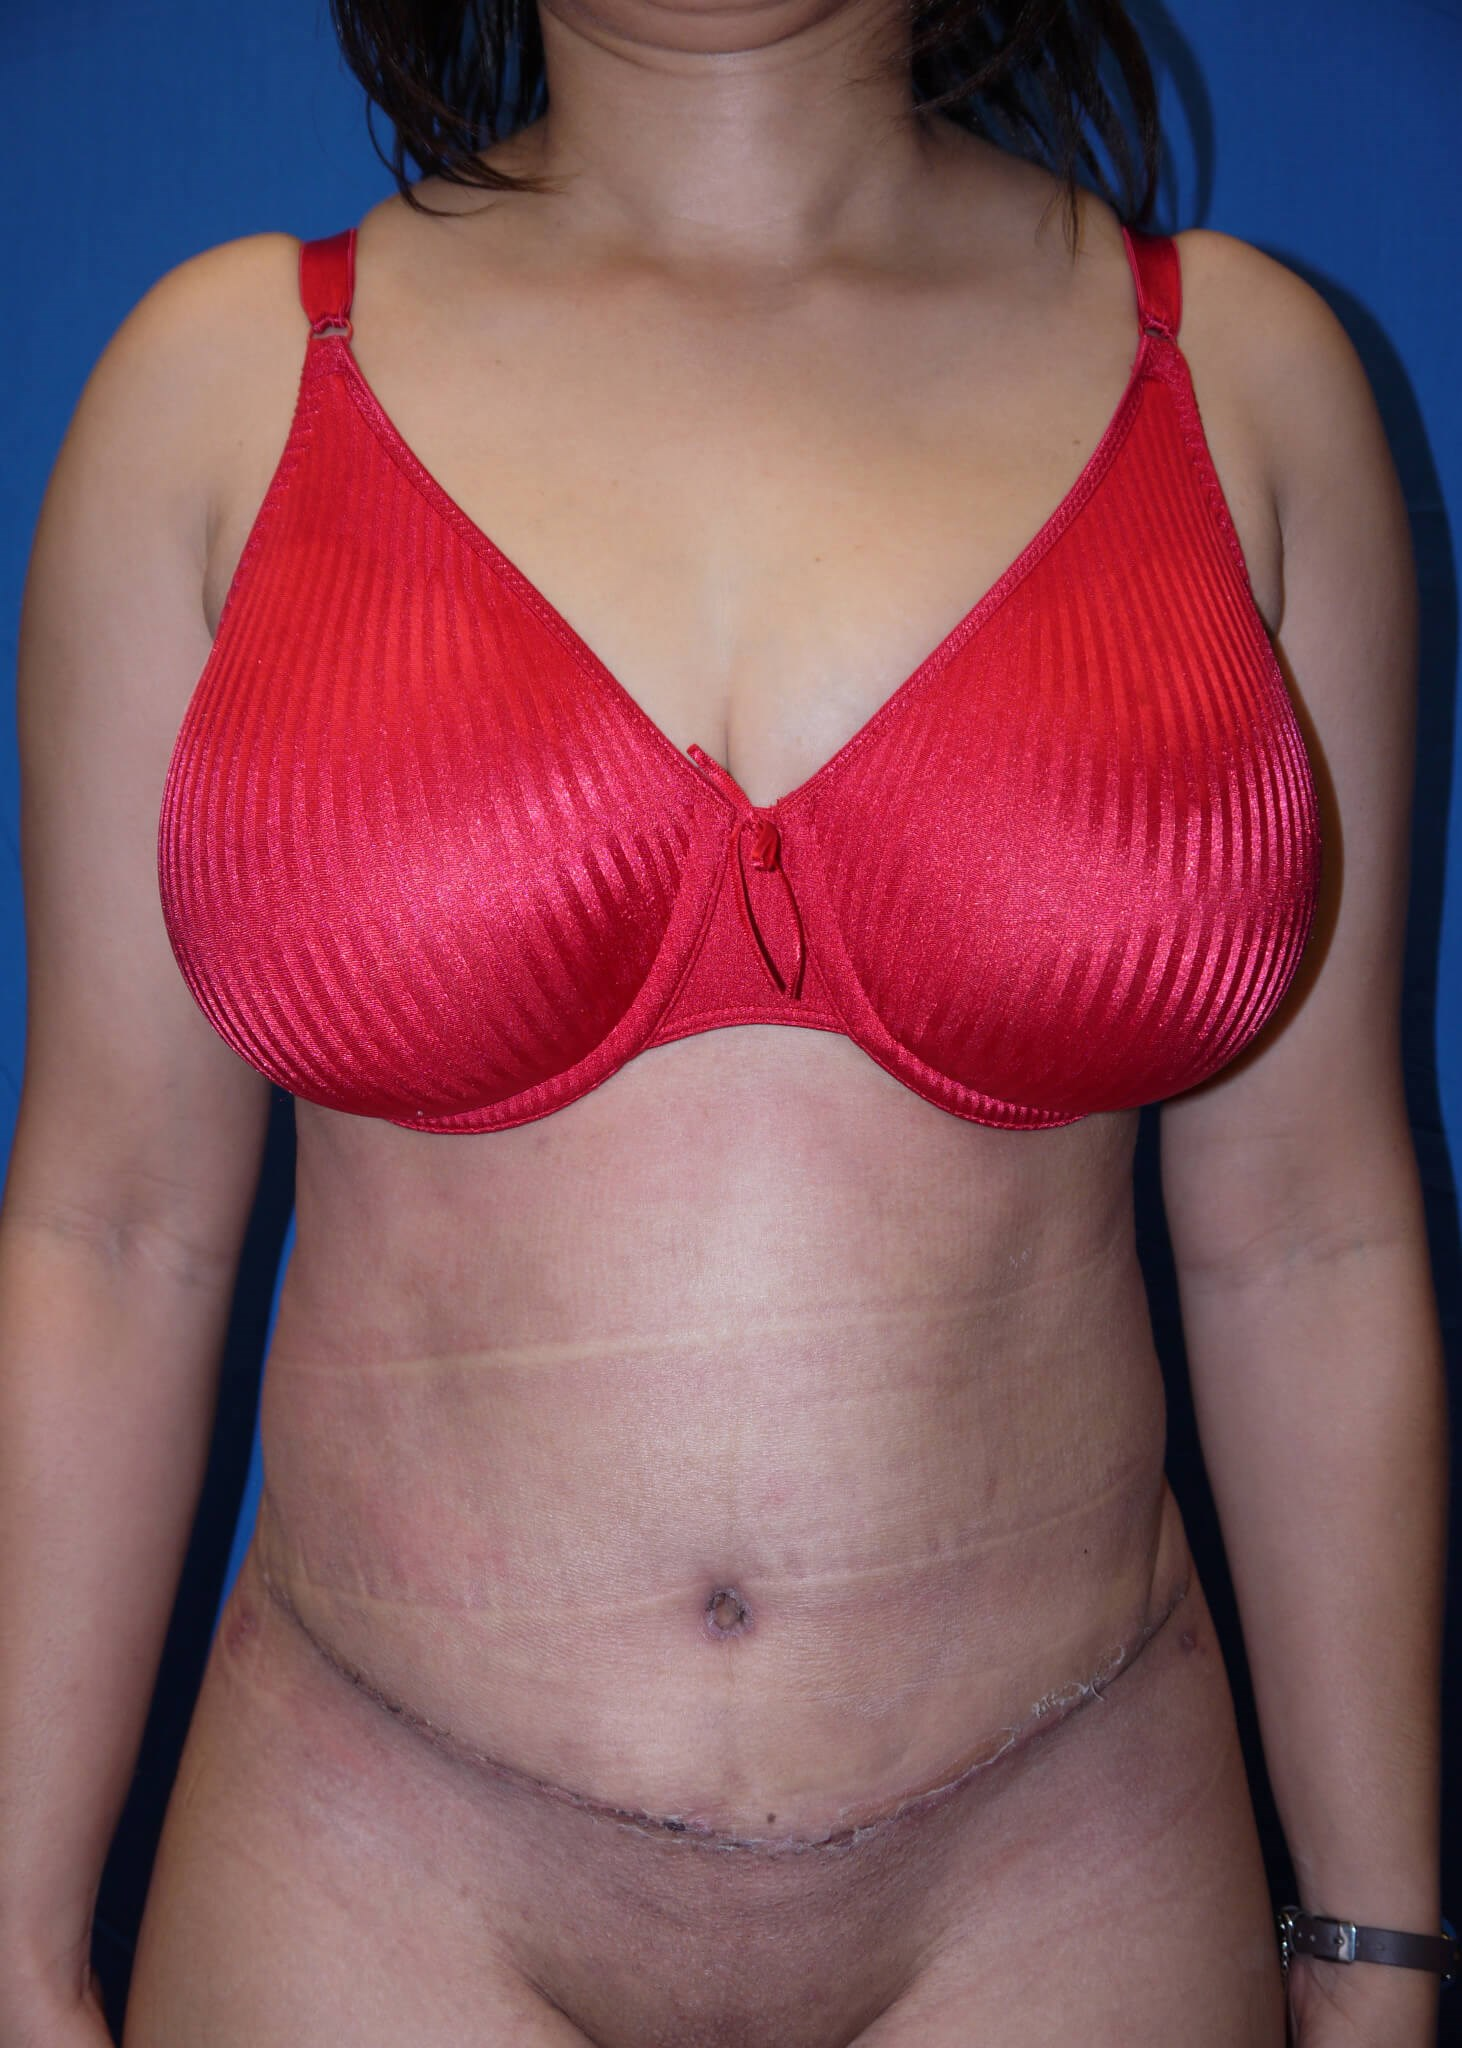 Abdominoplasty after - Front view